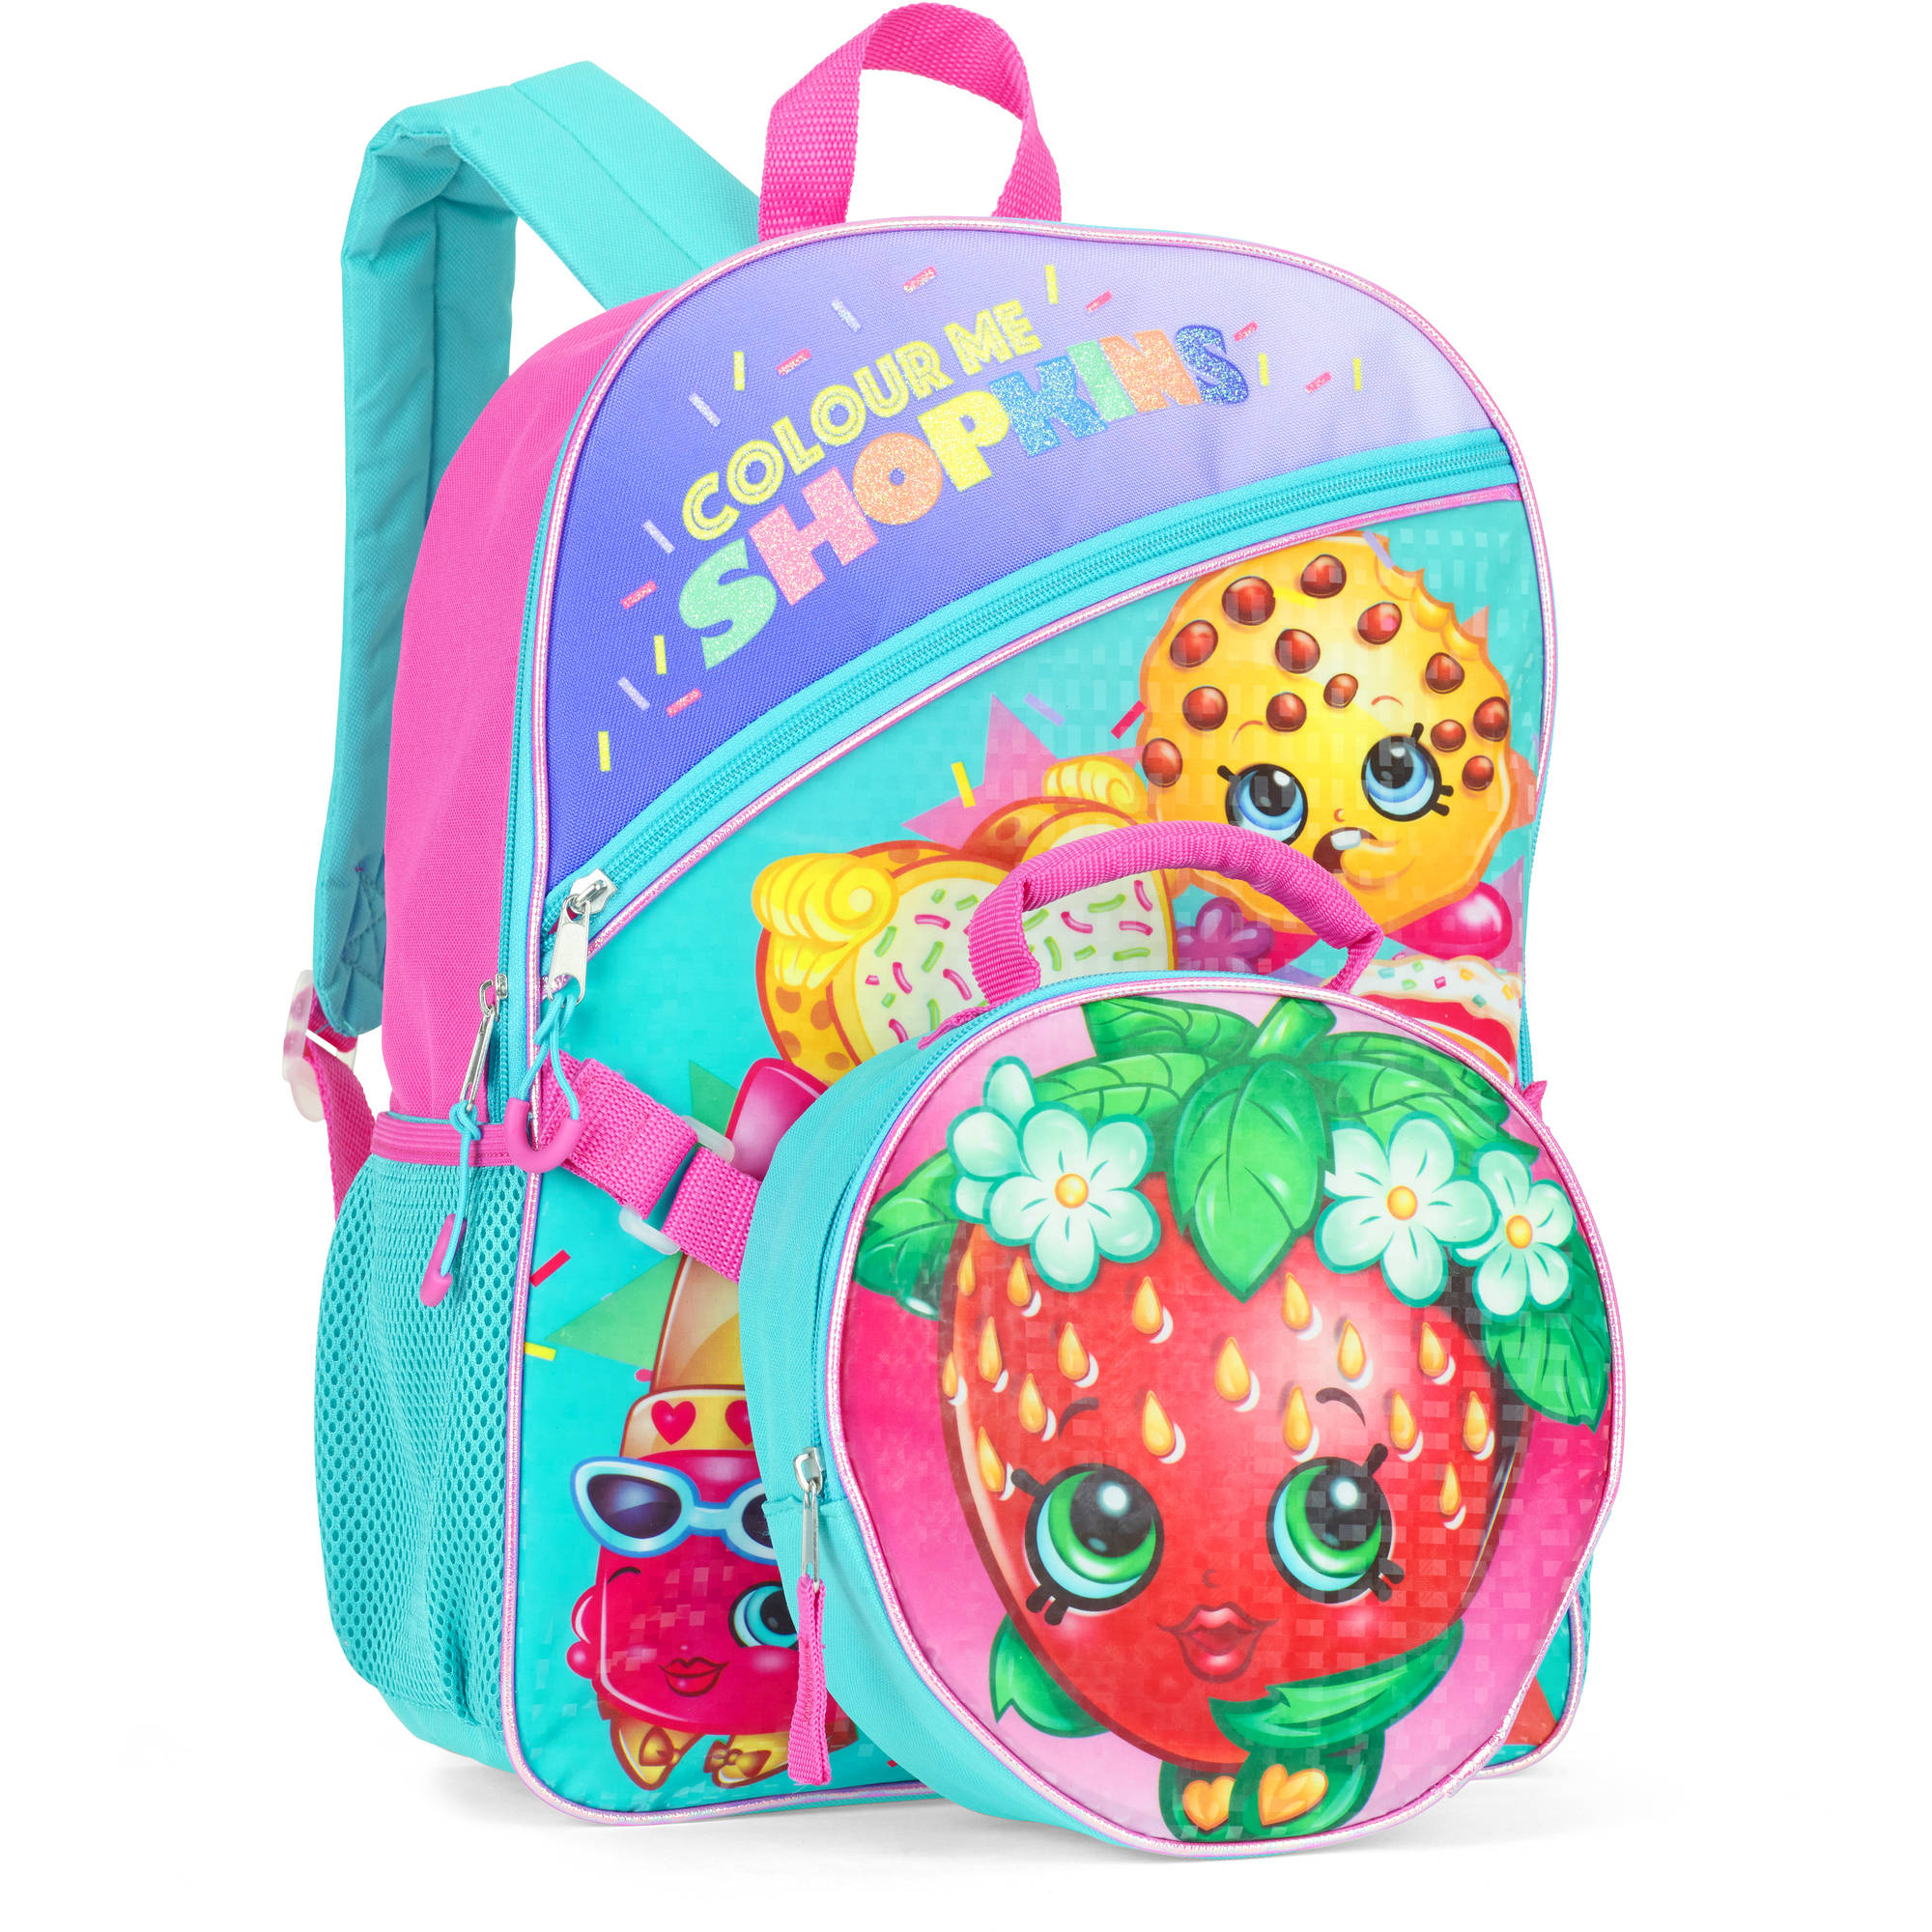 "Strawberry Shopkins 16"" Full-Size Backpack With Detachable Lunch Bag"